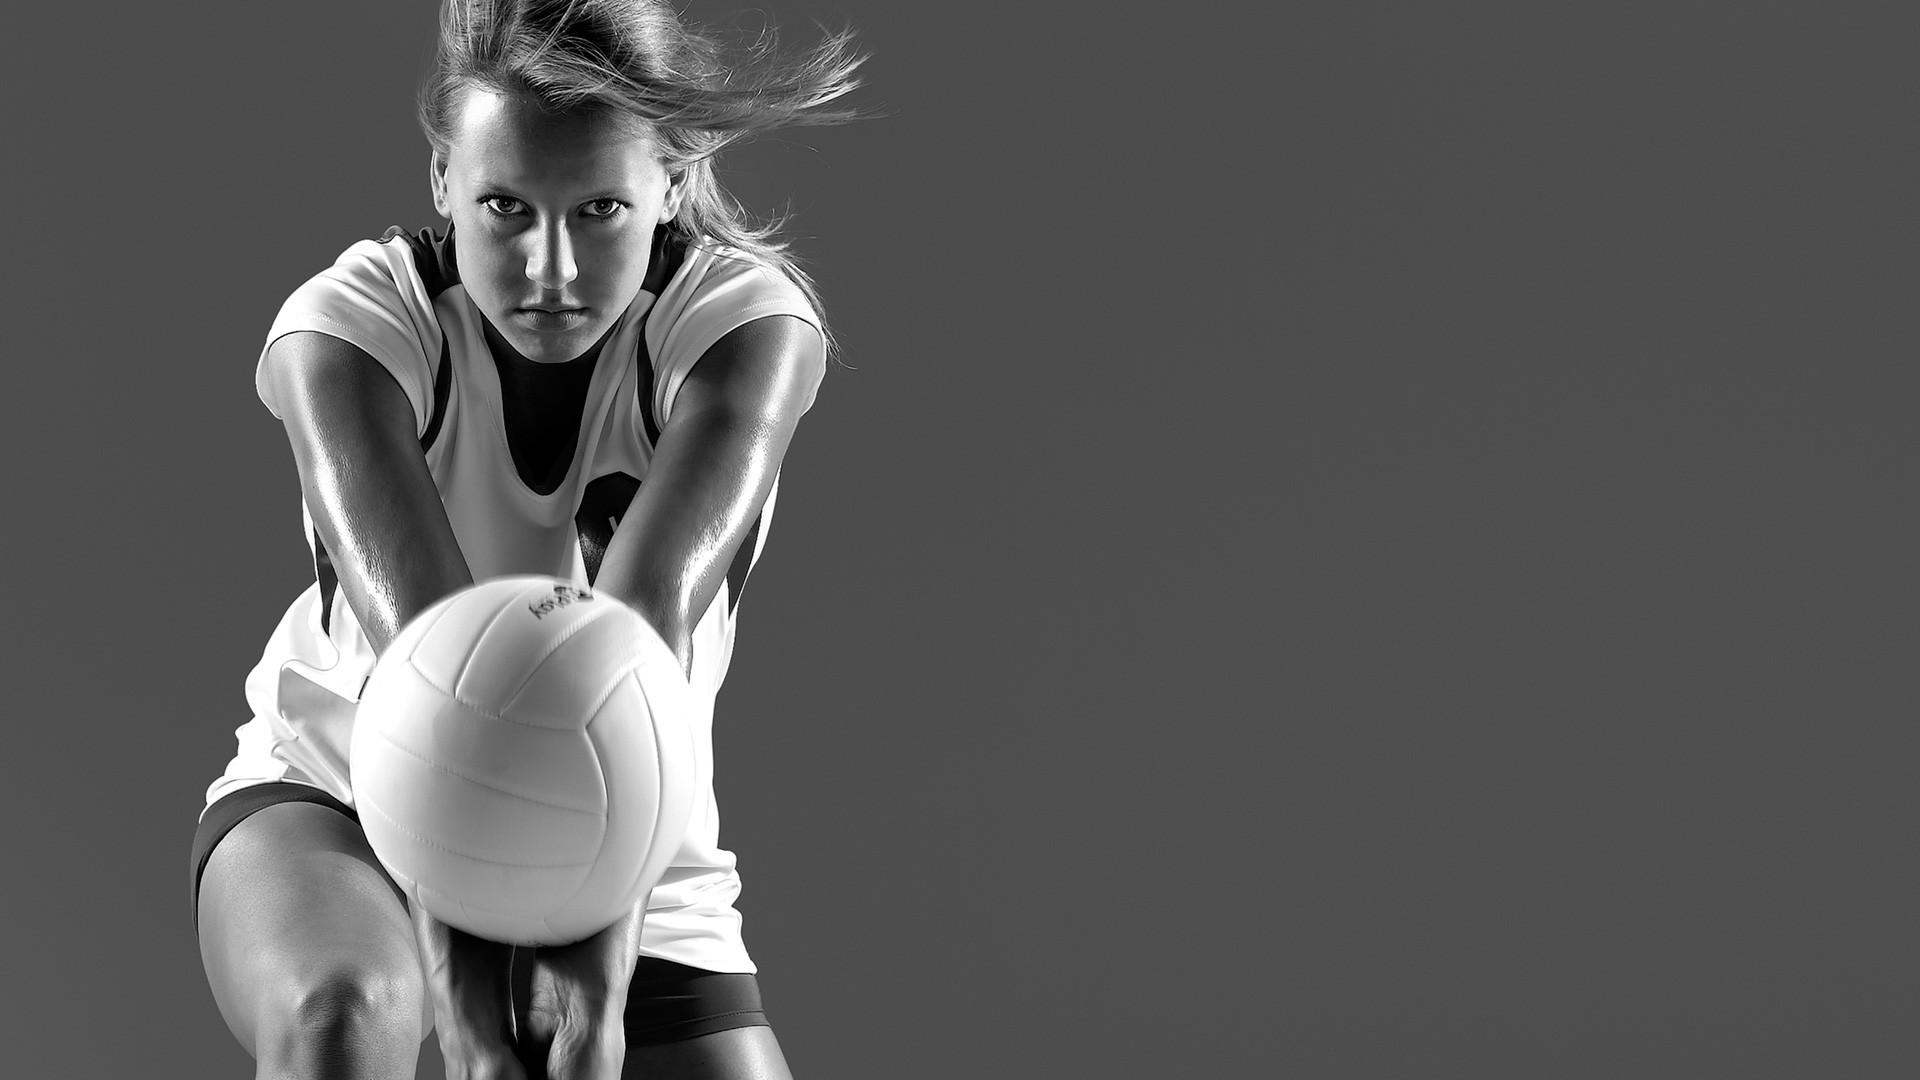 1920x1080 B/W photos of woman's volleyball player